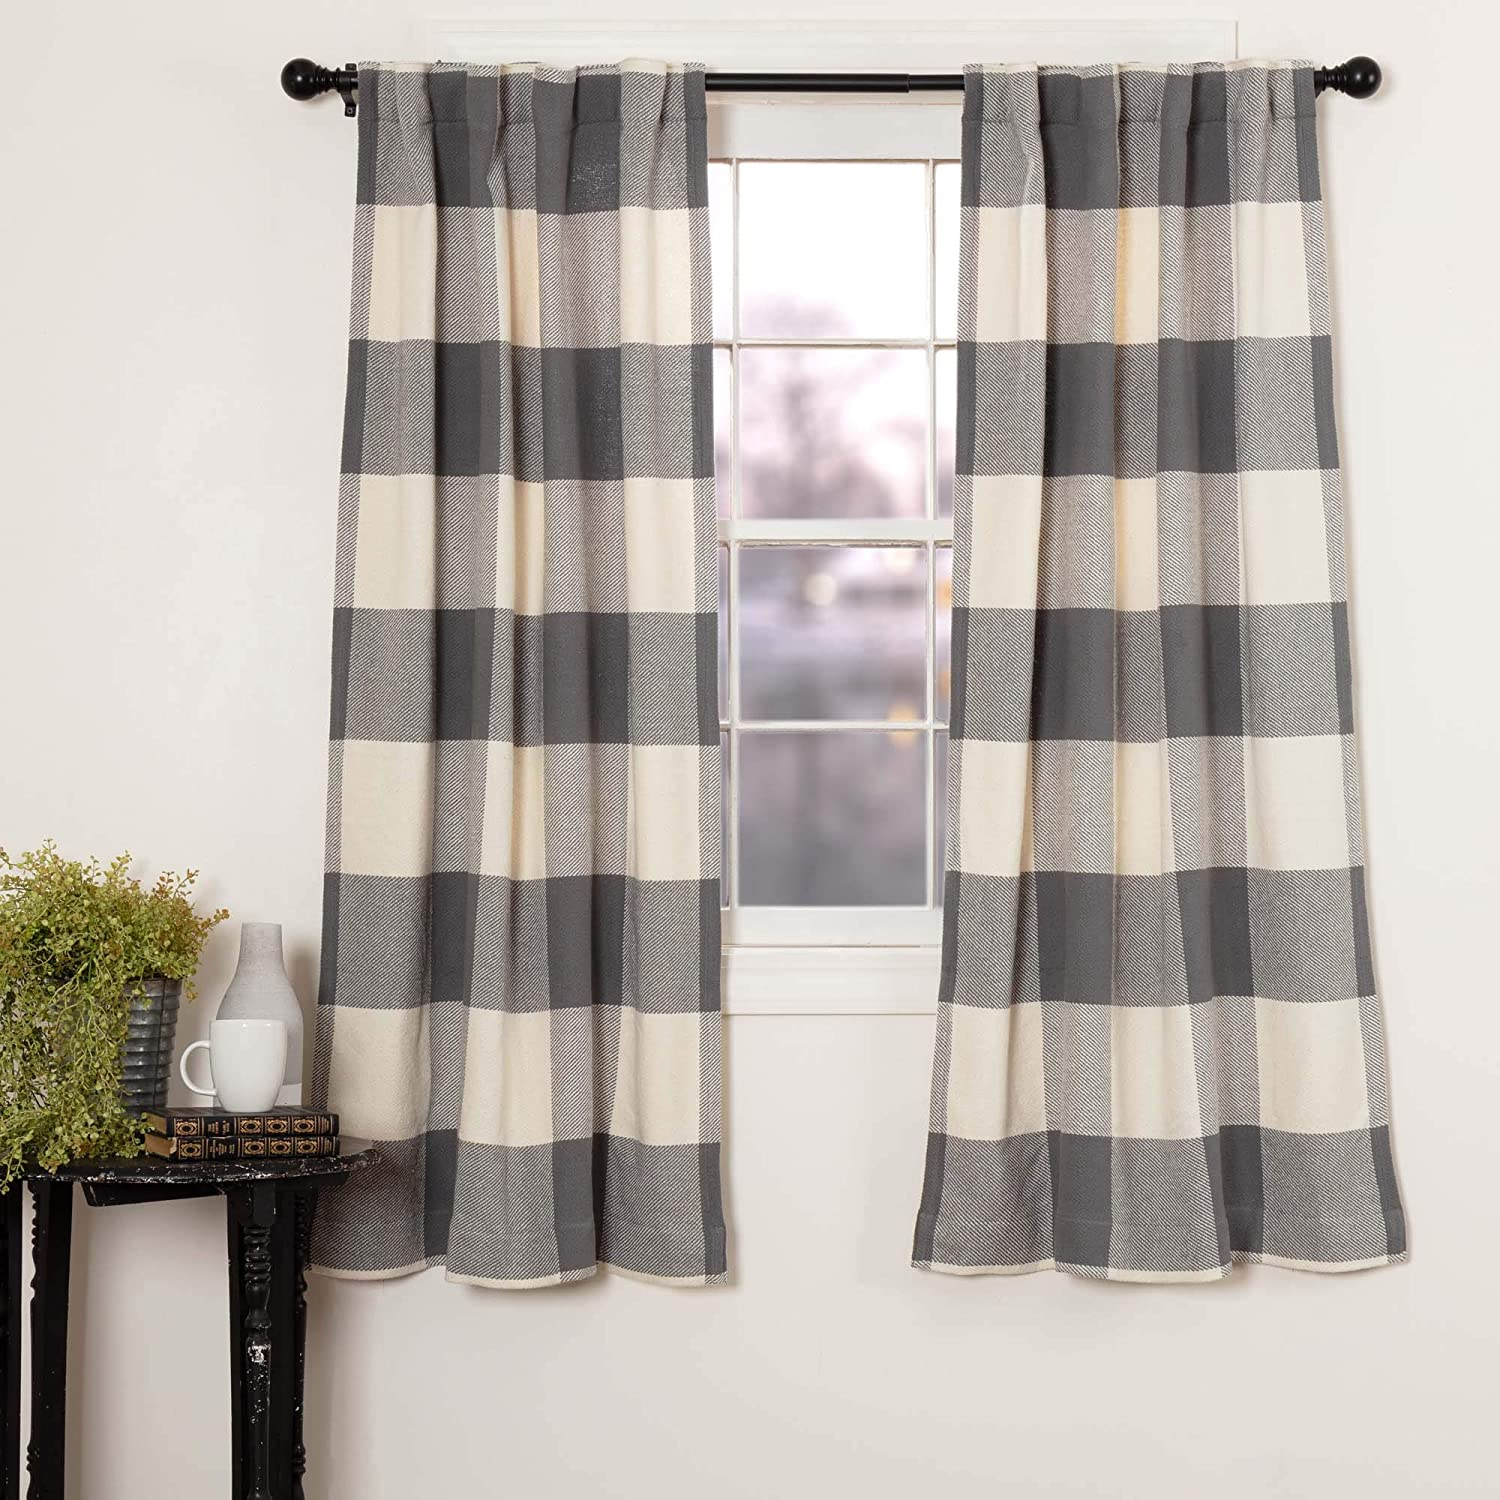 "Piper Classics Carter Gray Curtain Panels, Set of 2, 63"" Long, Modern Rustic Farmhouse Curtains, Dark Gray Check Drapes"